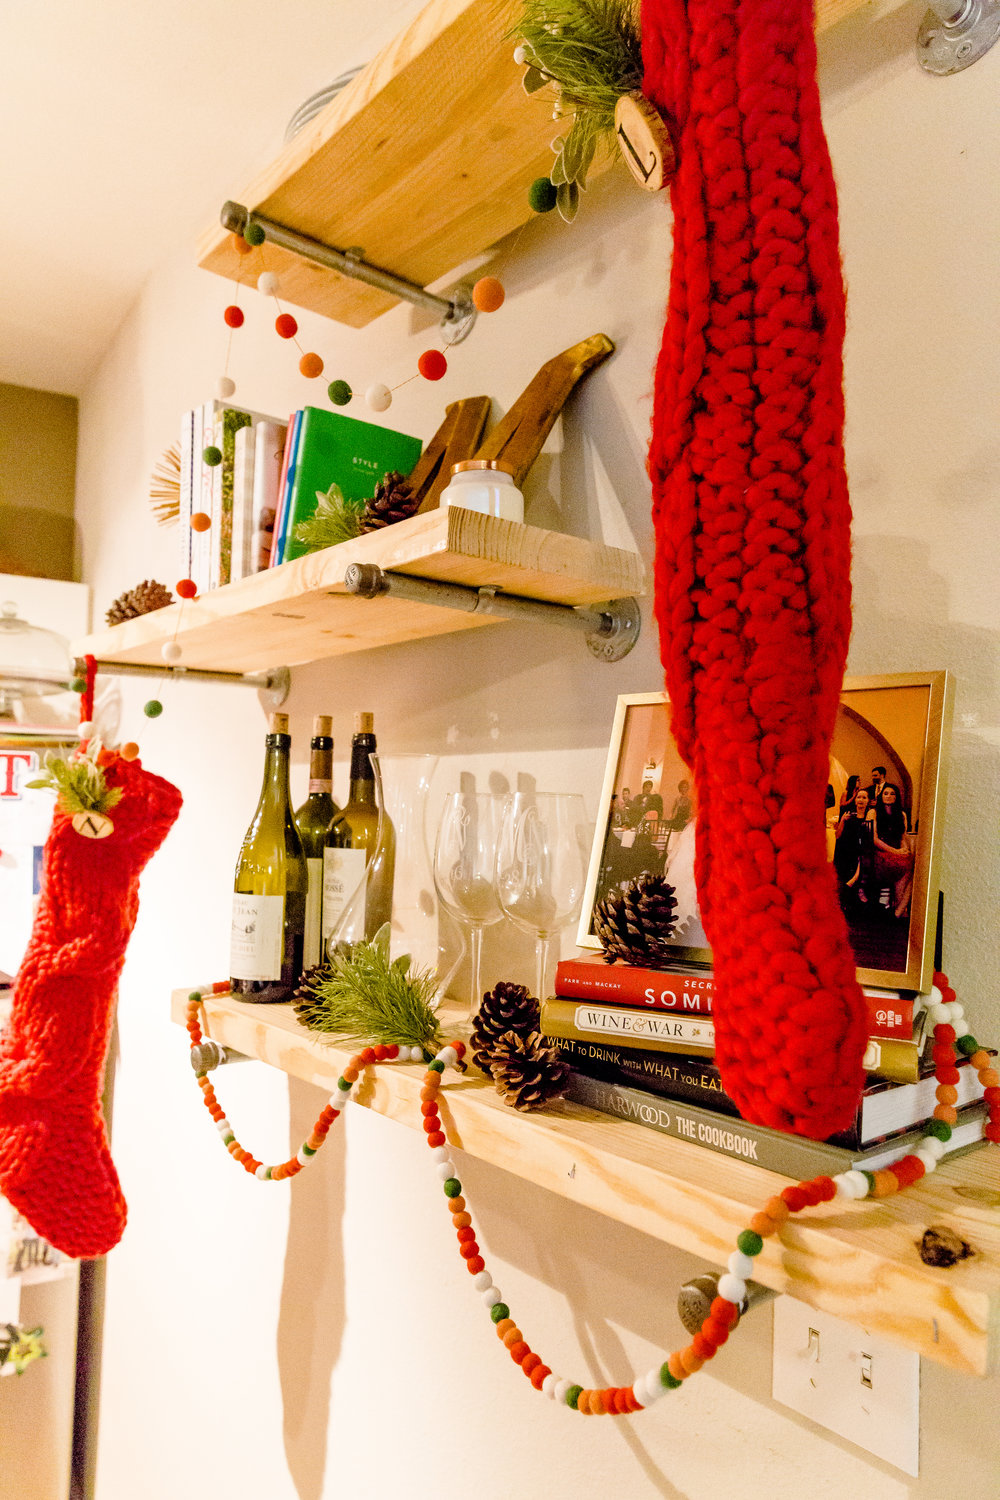 madison katlin photography, minted felt garland, crate and barrel knit stocking, floating shelves, christmas decor ideas, christmas decor for small apartments